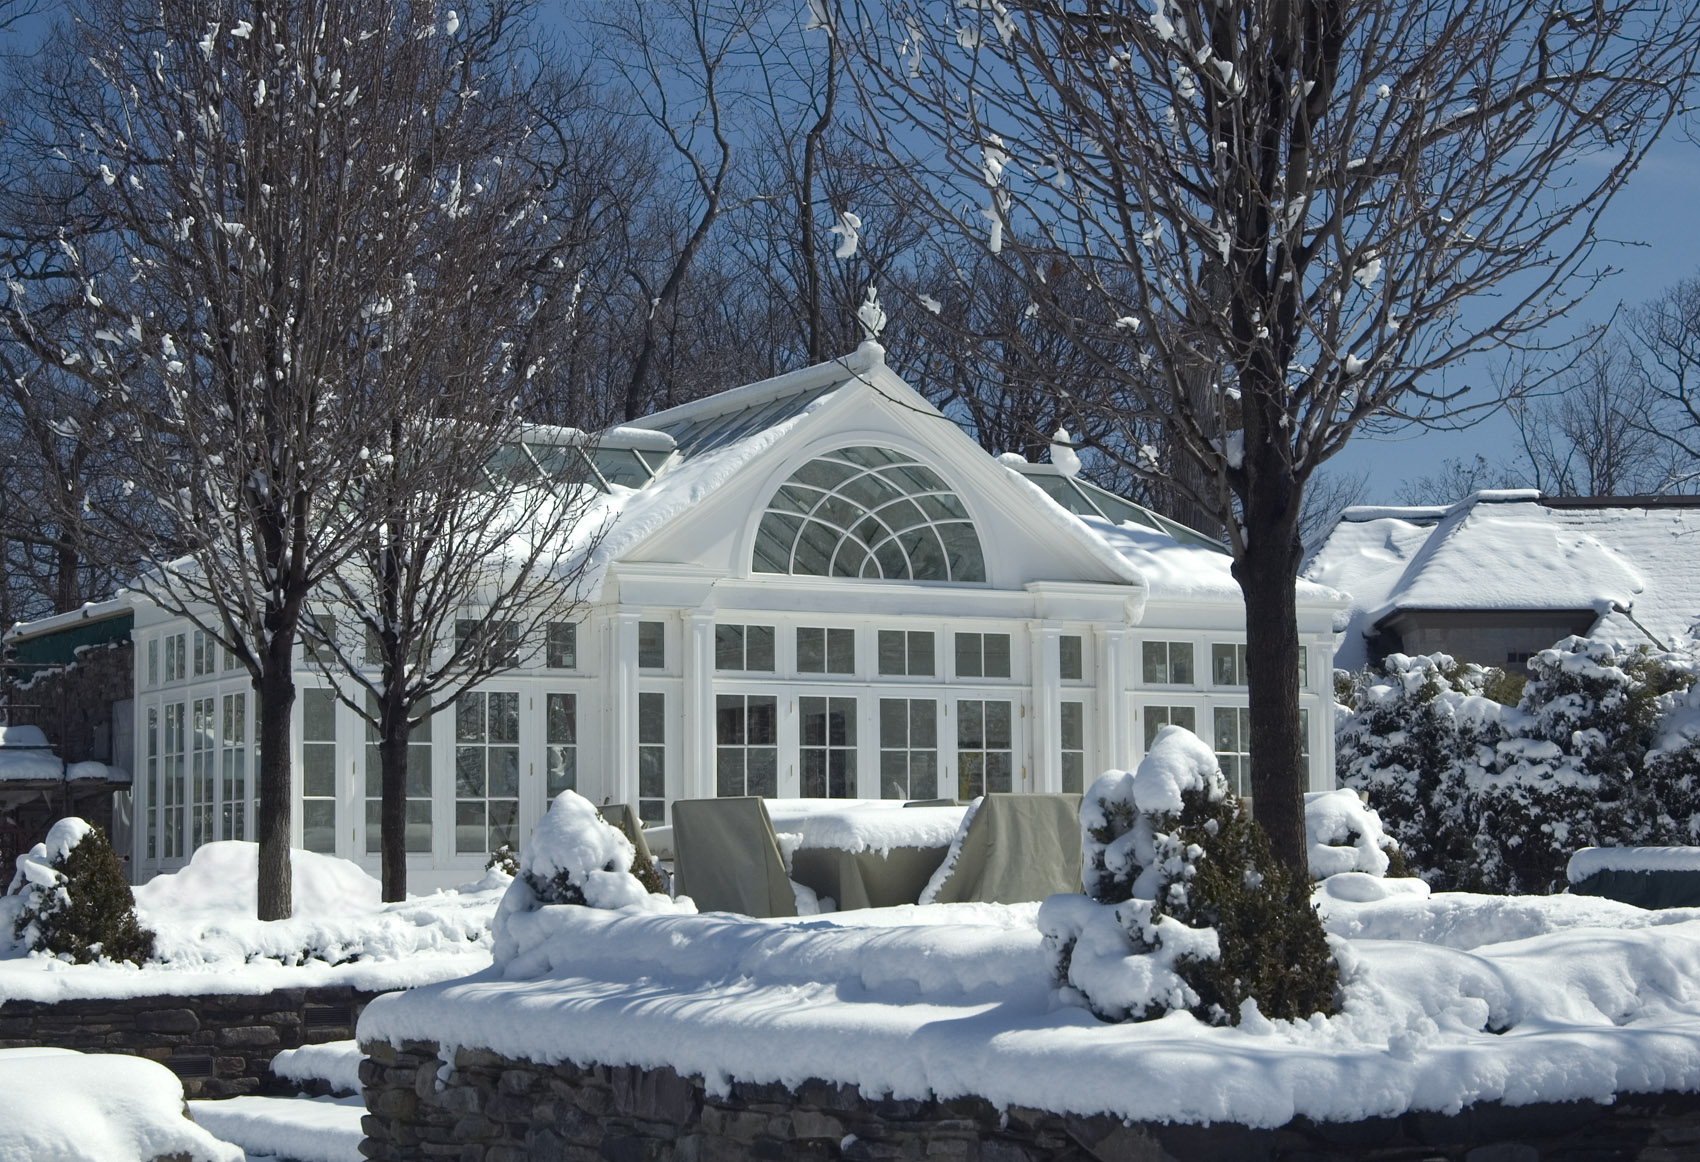 snowy pool house conservatory